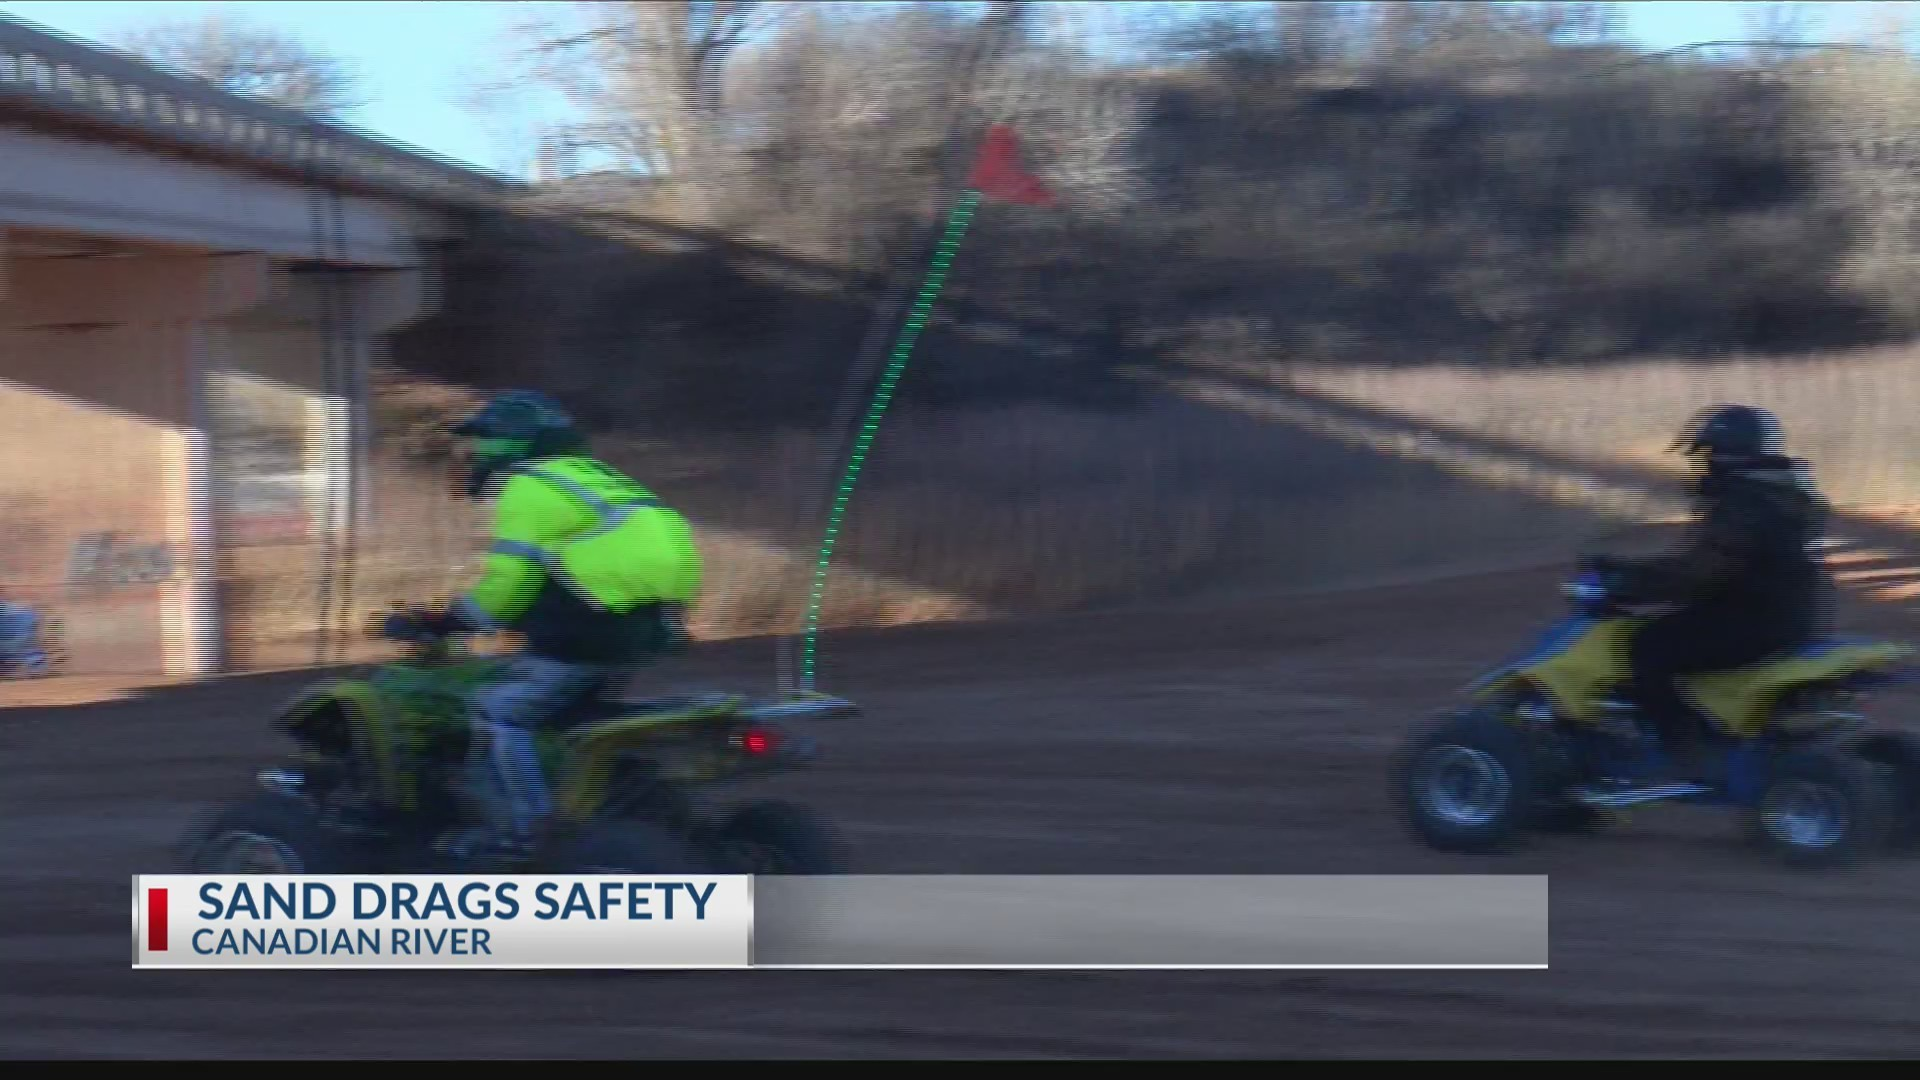 Sand Drags Safety